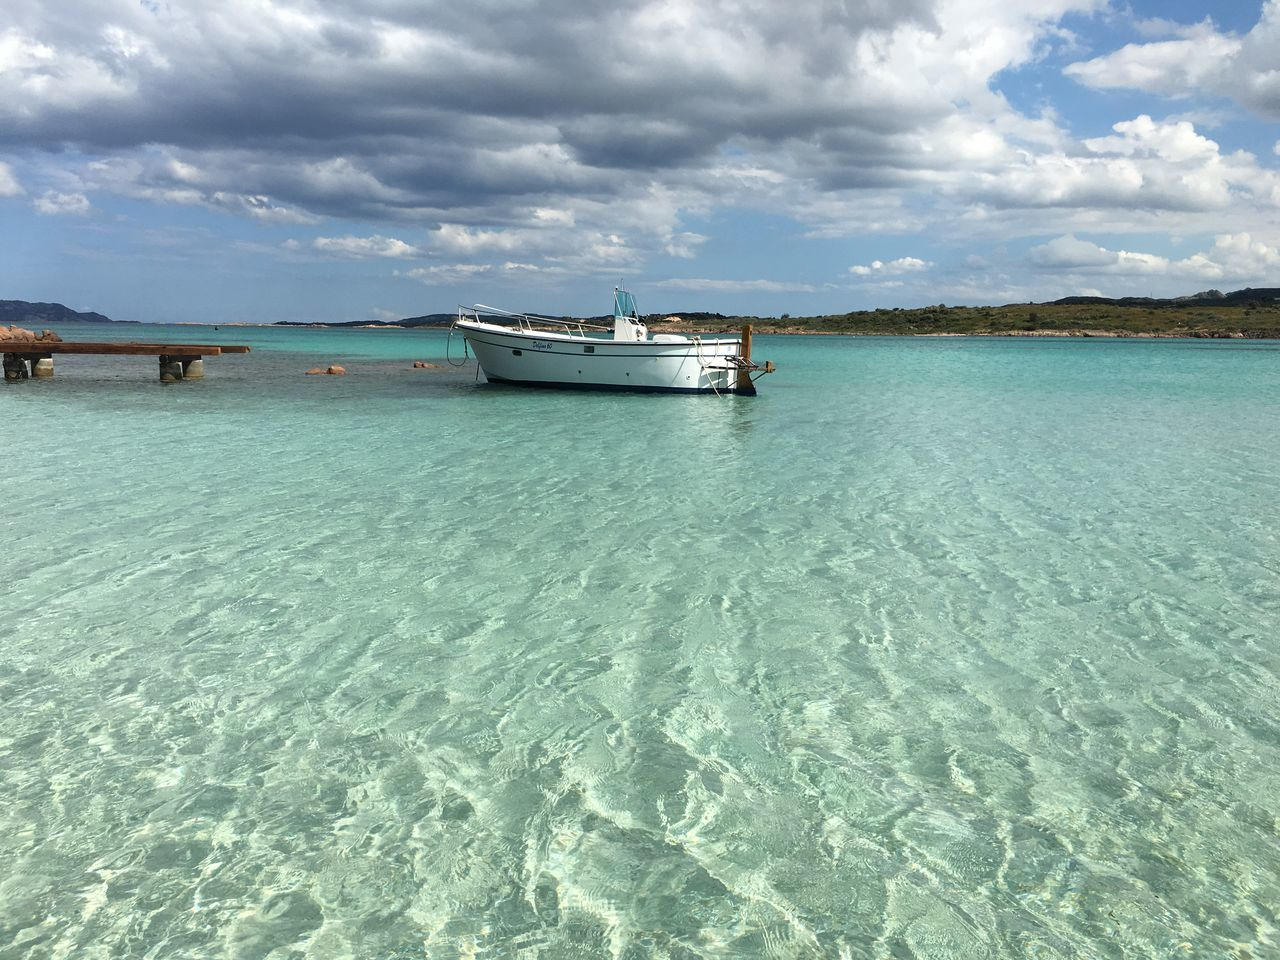 olbia Beach Beauty In Nature Cloud - Sky Cloudy Sky Crystal Clear Waters Day Island Island Living Islandlife Mode Of Transport Nature Nautical Vessel No People Outdoors Reflection Sand Scenics Sea Sky Tranquil Scene Tranquility Transportation Water